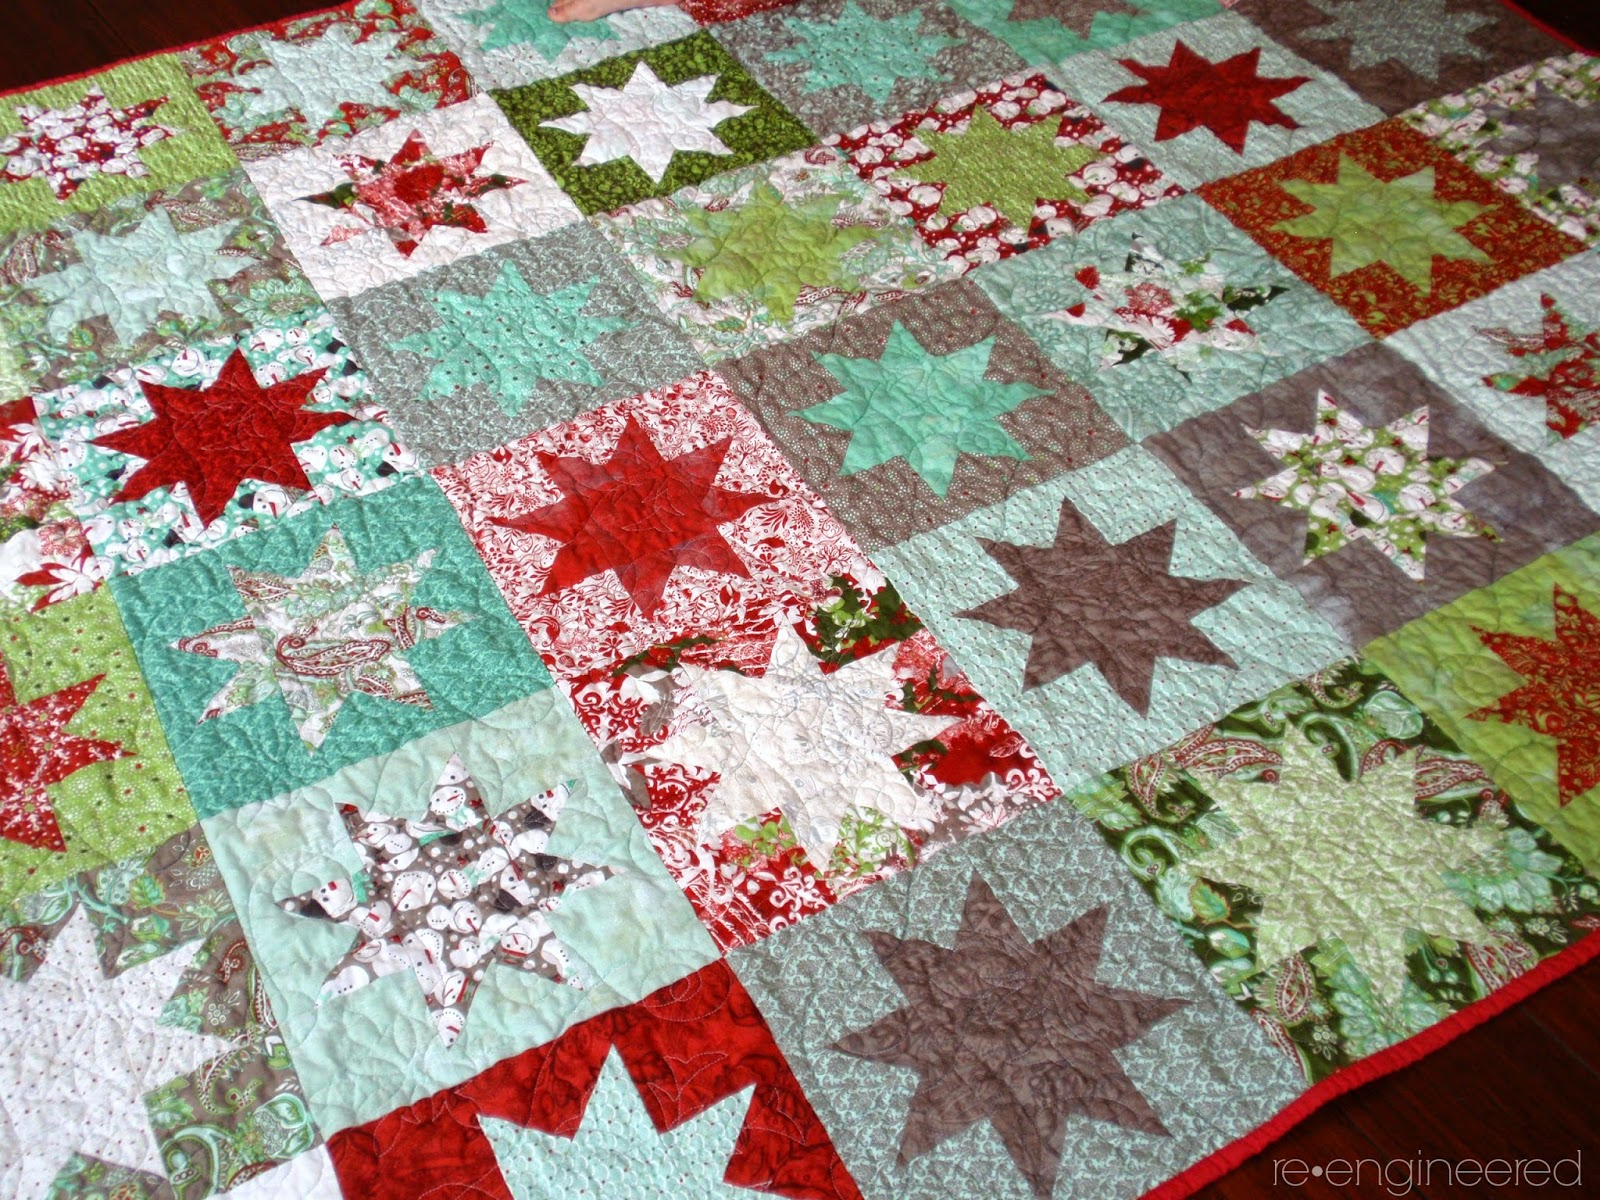 http://www.re-engineered.blogspot.com/2014/05/starry-christmas-quilt-finished.html